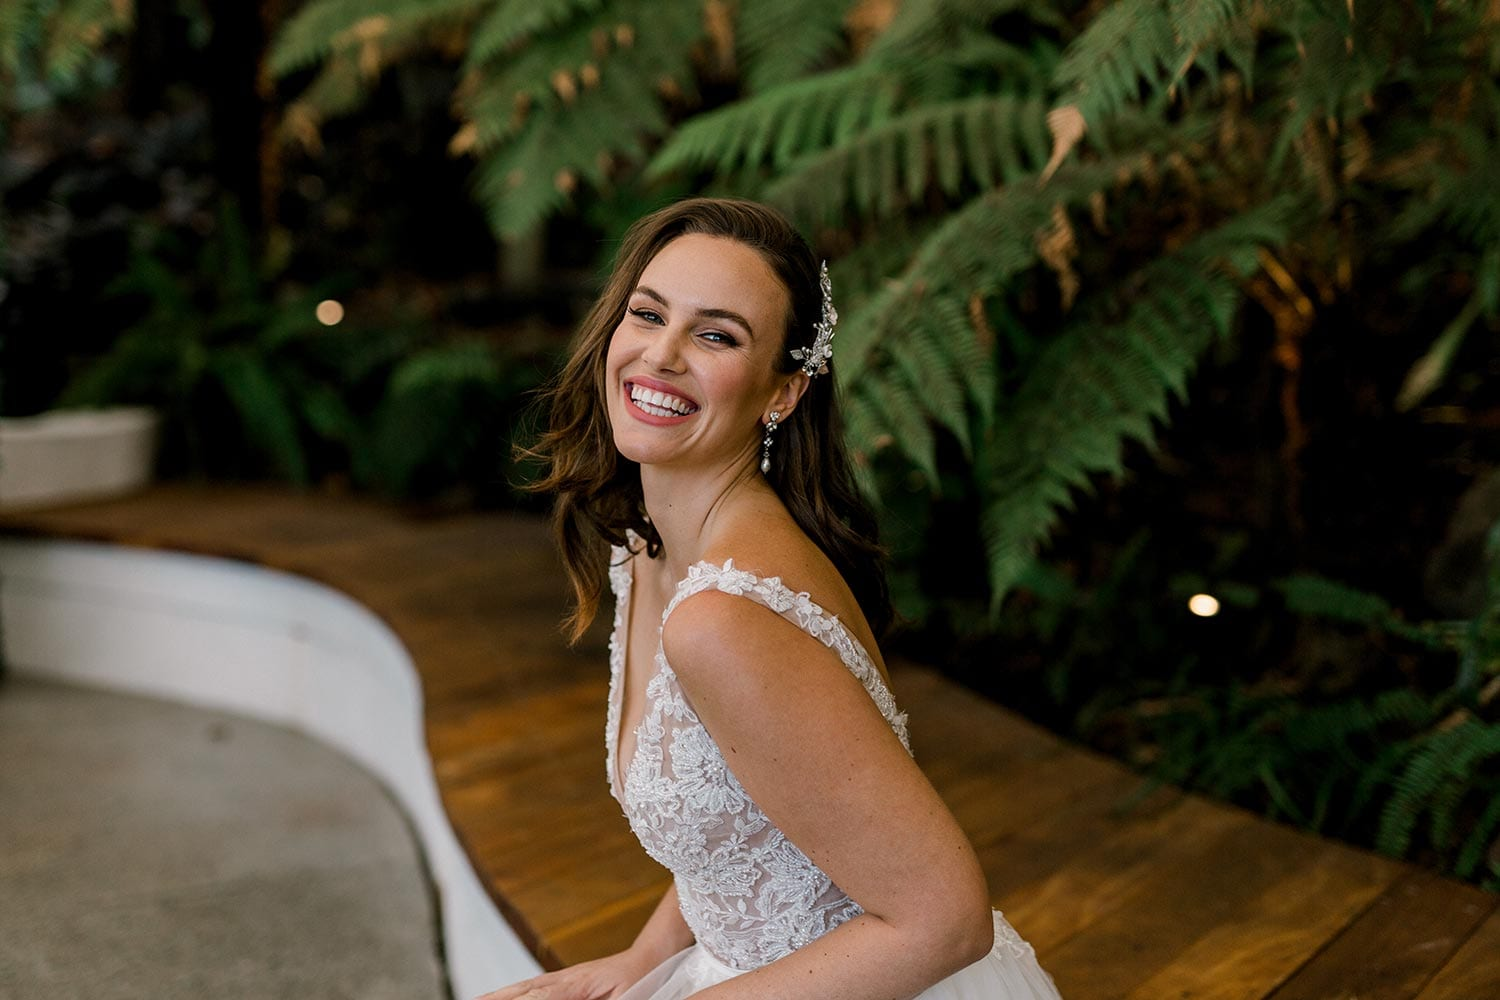 Vivian Wedding gown from Vinka Design - A stunning gown with a deep V-neckline on both the front & back. Fitted semi-sheer nude bodice embellished with a beaded floral lace, a soft layered tulle skirt. Worn in conservatory with fern background, close up of V-neckline.